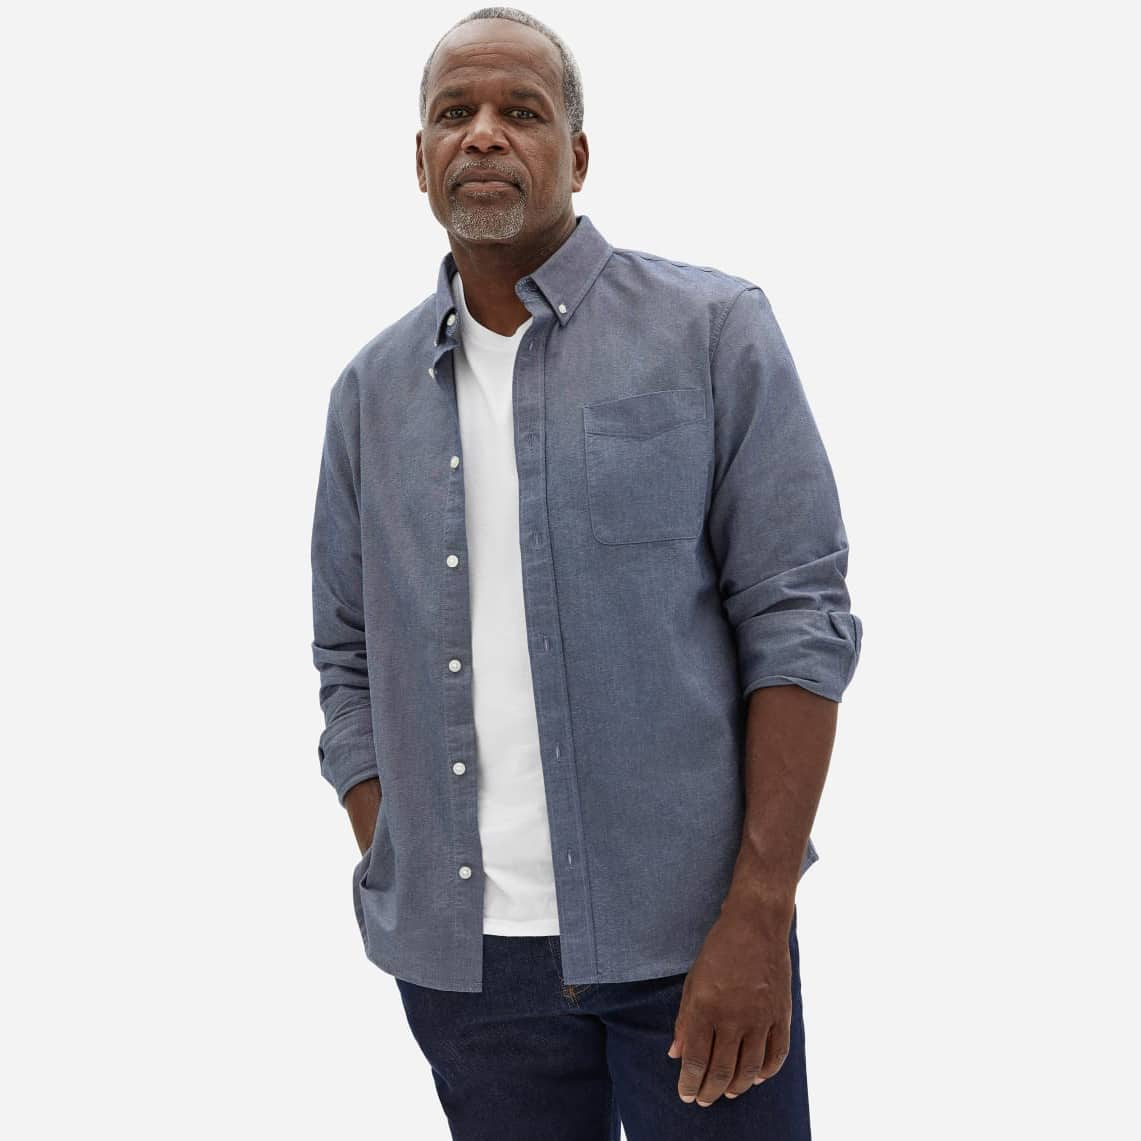 Everlane - The Standard Fit Japanese Oxford Shirt | Uniform